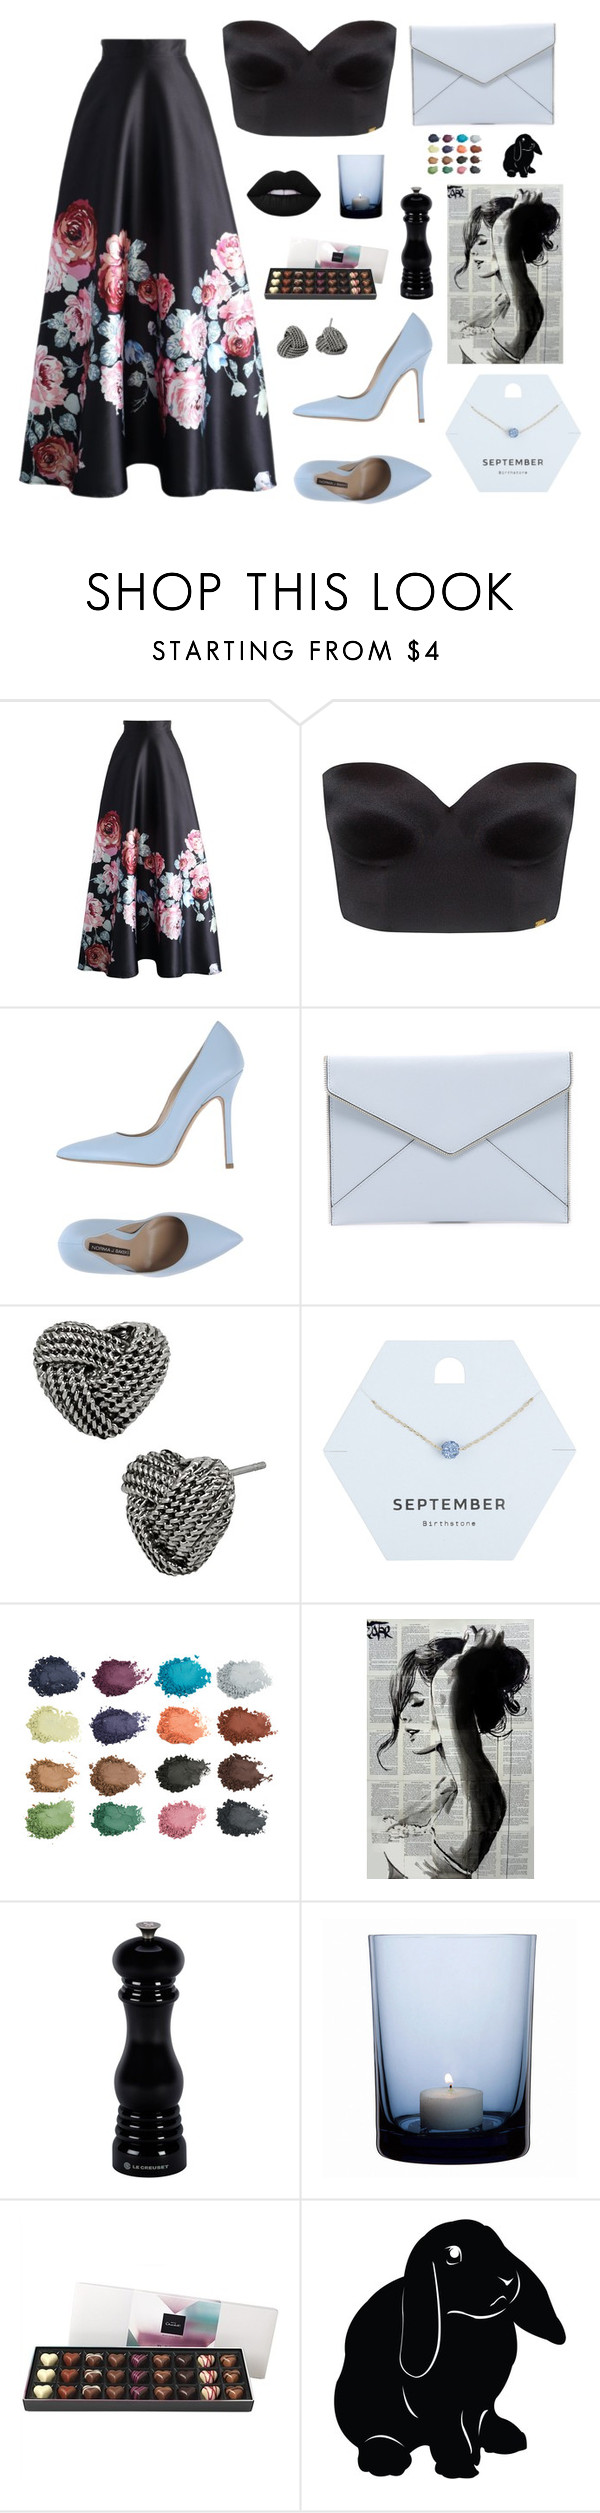 """Virgo"" by my-marvelou ❤ liked on Polyvore featuring Chicwish, Ultimo, Norma J.Baker, Rebecca Minkoff, Betsey Johnson, Miss Selfridge, Le Creuset, By Nord and Lime Crime"